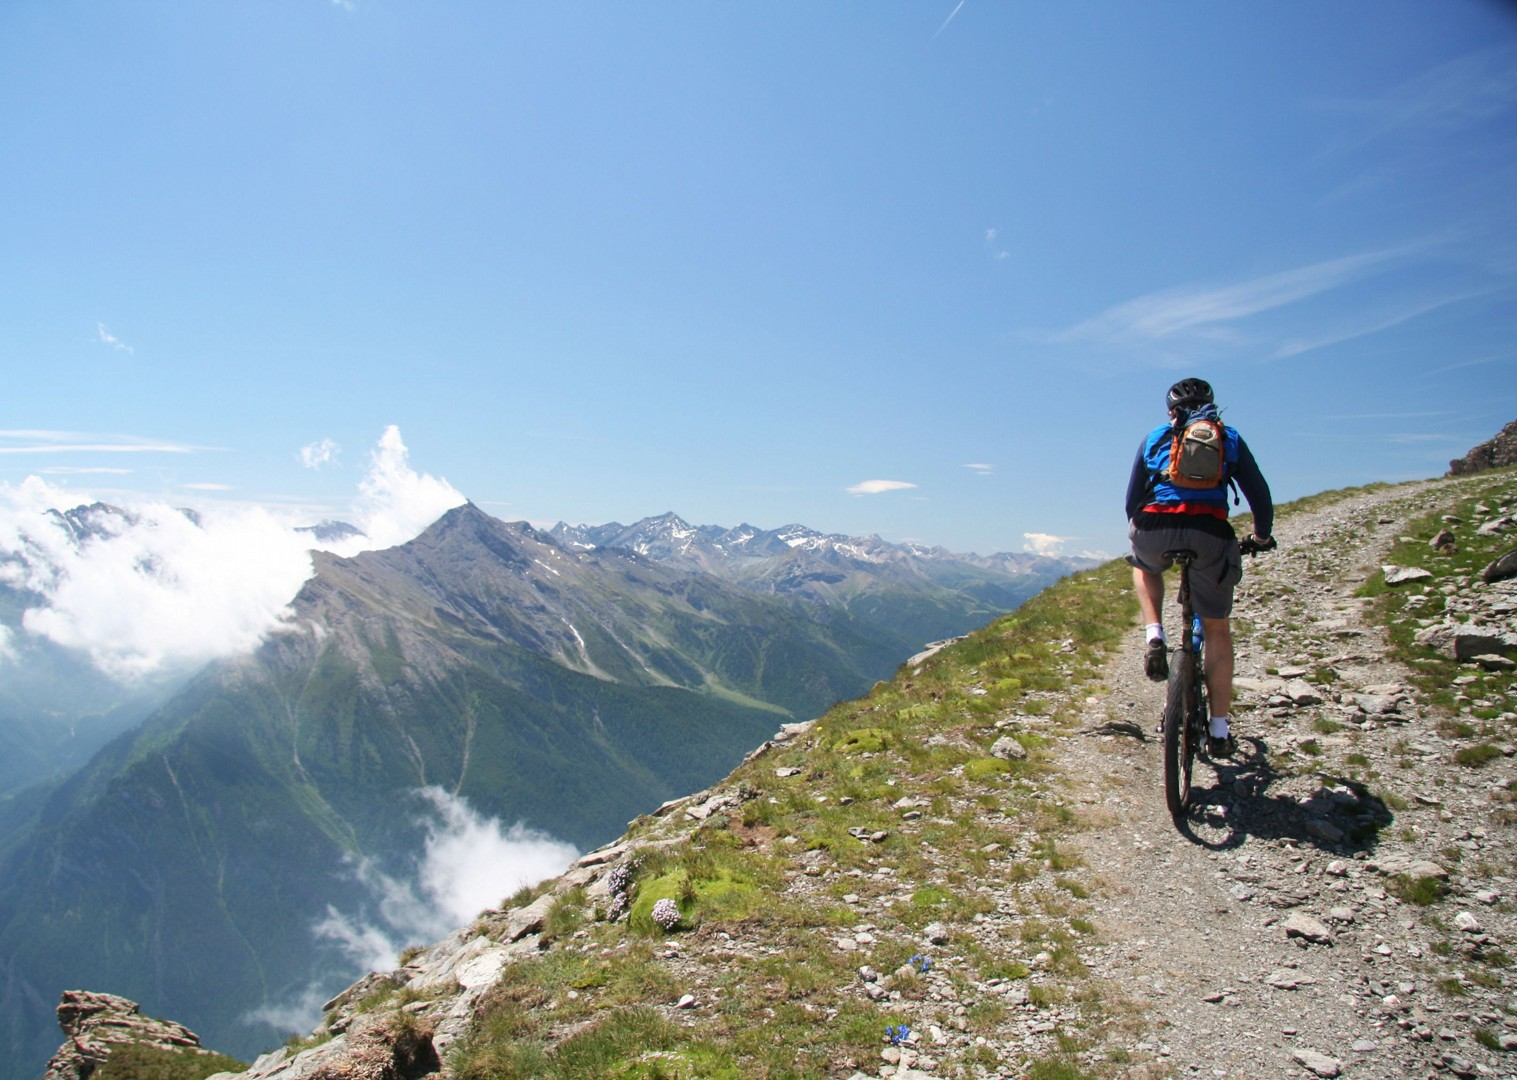 mountain-bike-holiday-in-italy-and-france-alpine-adventure.JPG - Italy and France - Alpine Adventure - Mountain Biking